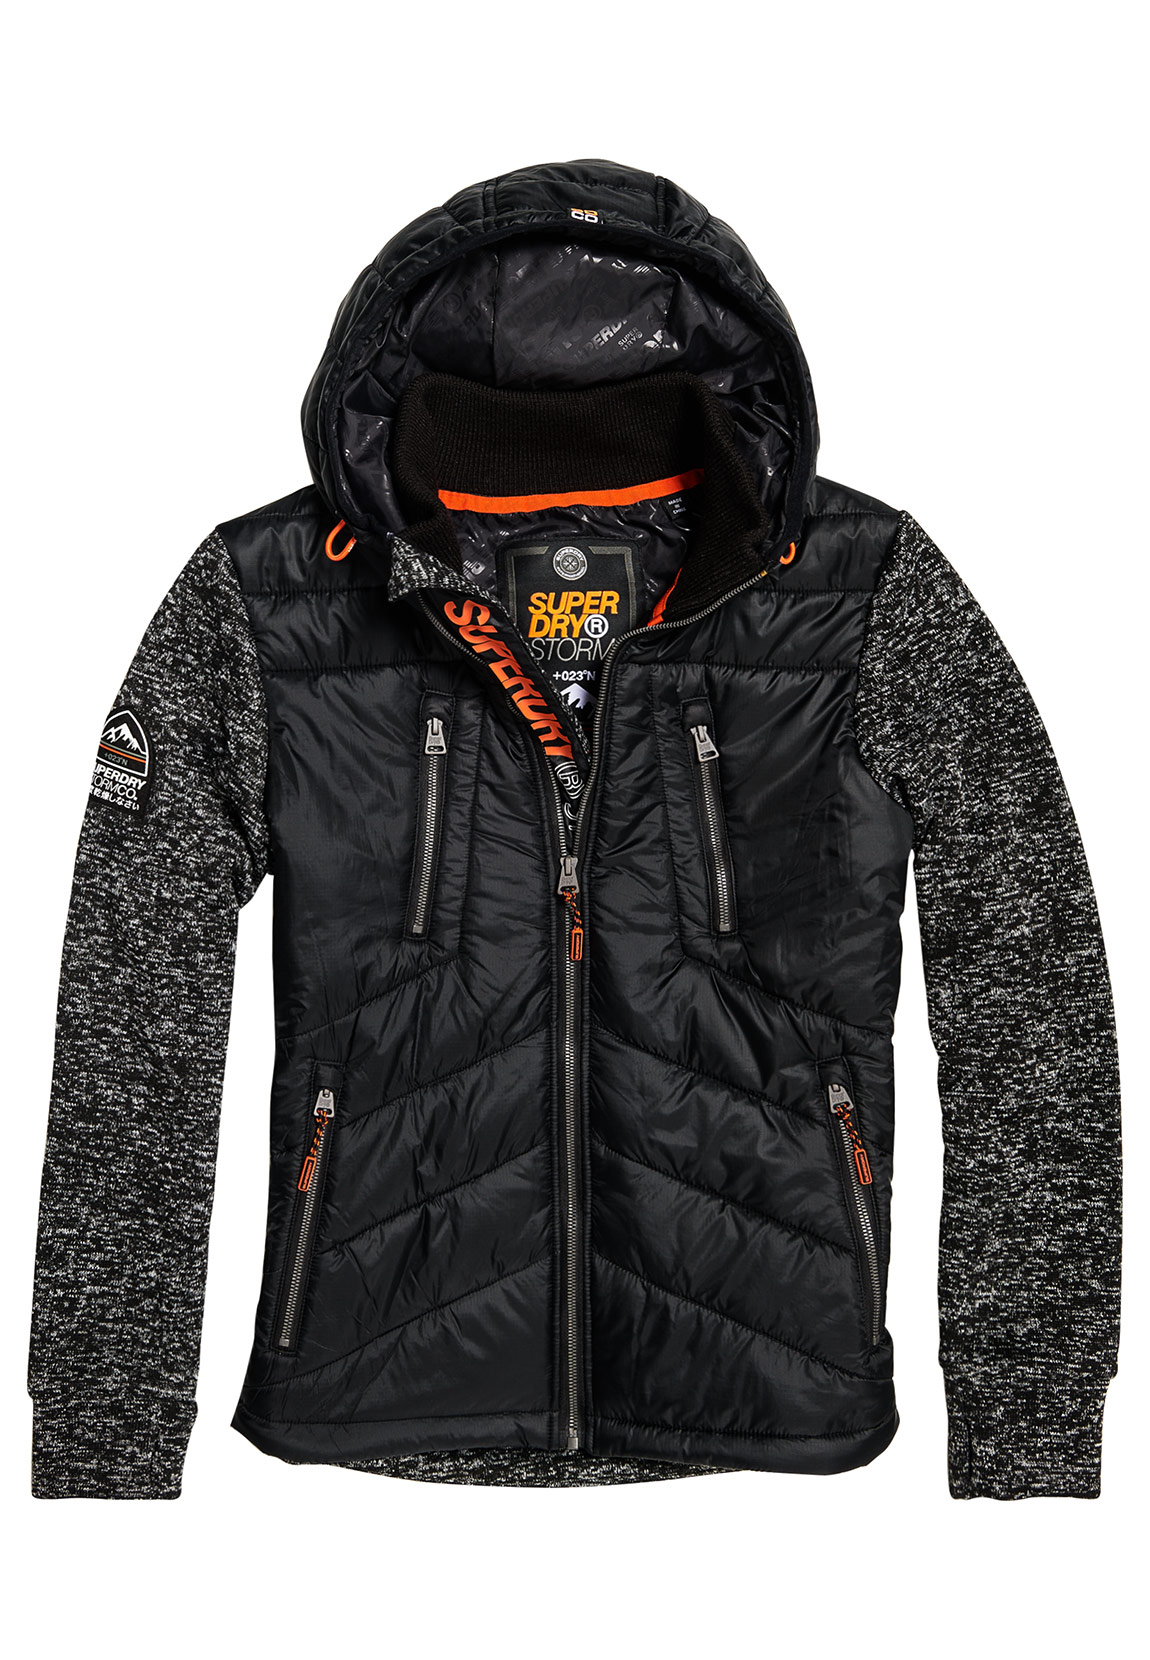 best website afdca 74955 Superdry Jacke Herren STORM HYBRID ZIPHOOD Gritty Black